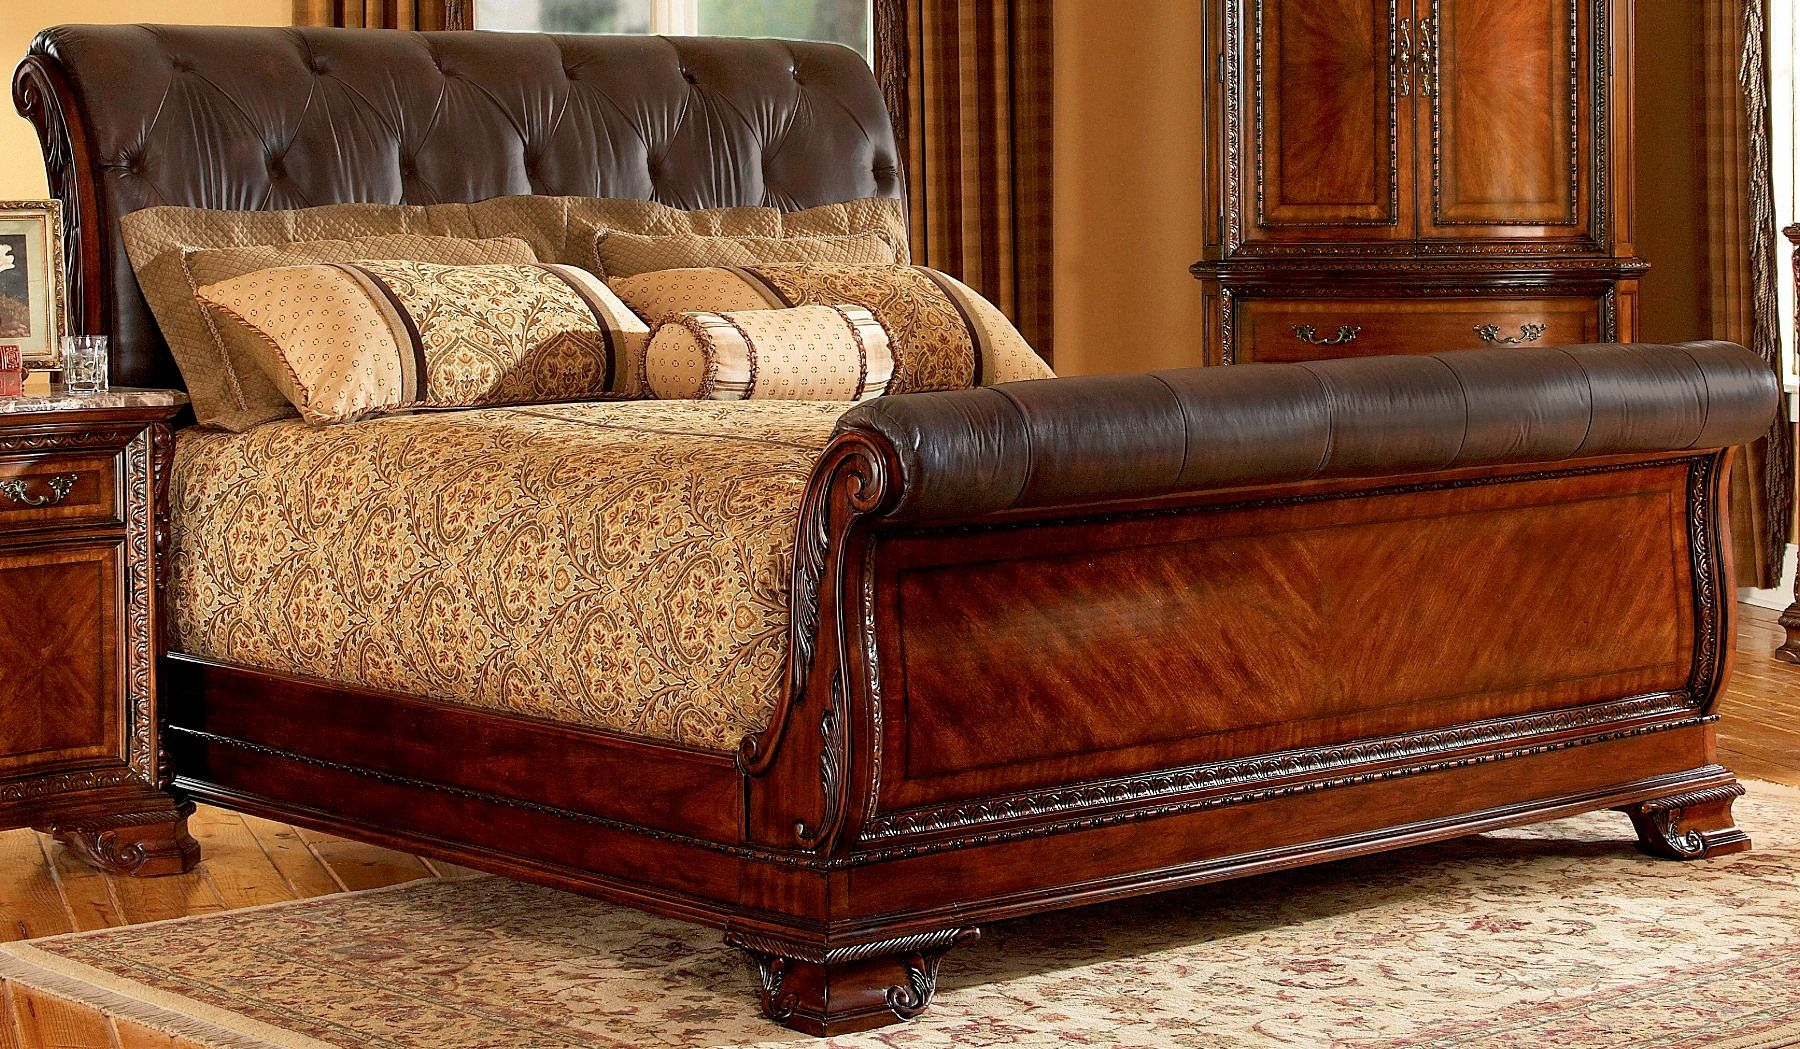 Rattan And Leather Sleigh Bed Queen Bedroom Furniture Brown Wood Bedroom Wood Bedroom Leather sleigh bed king